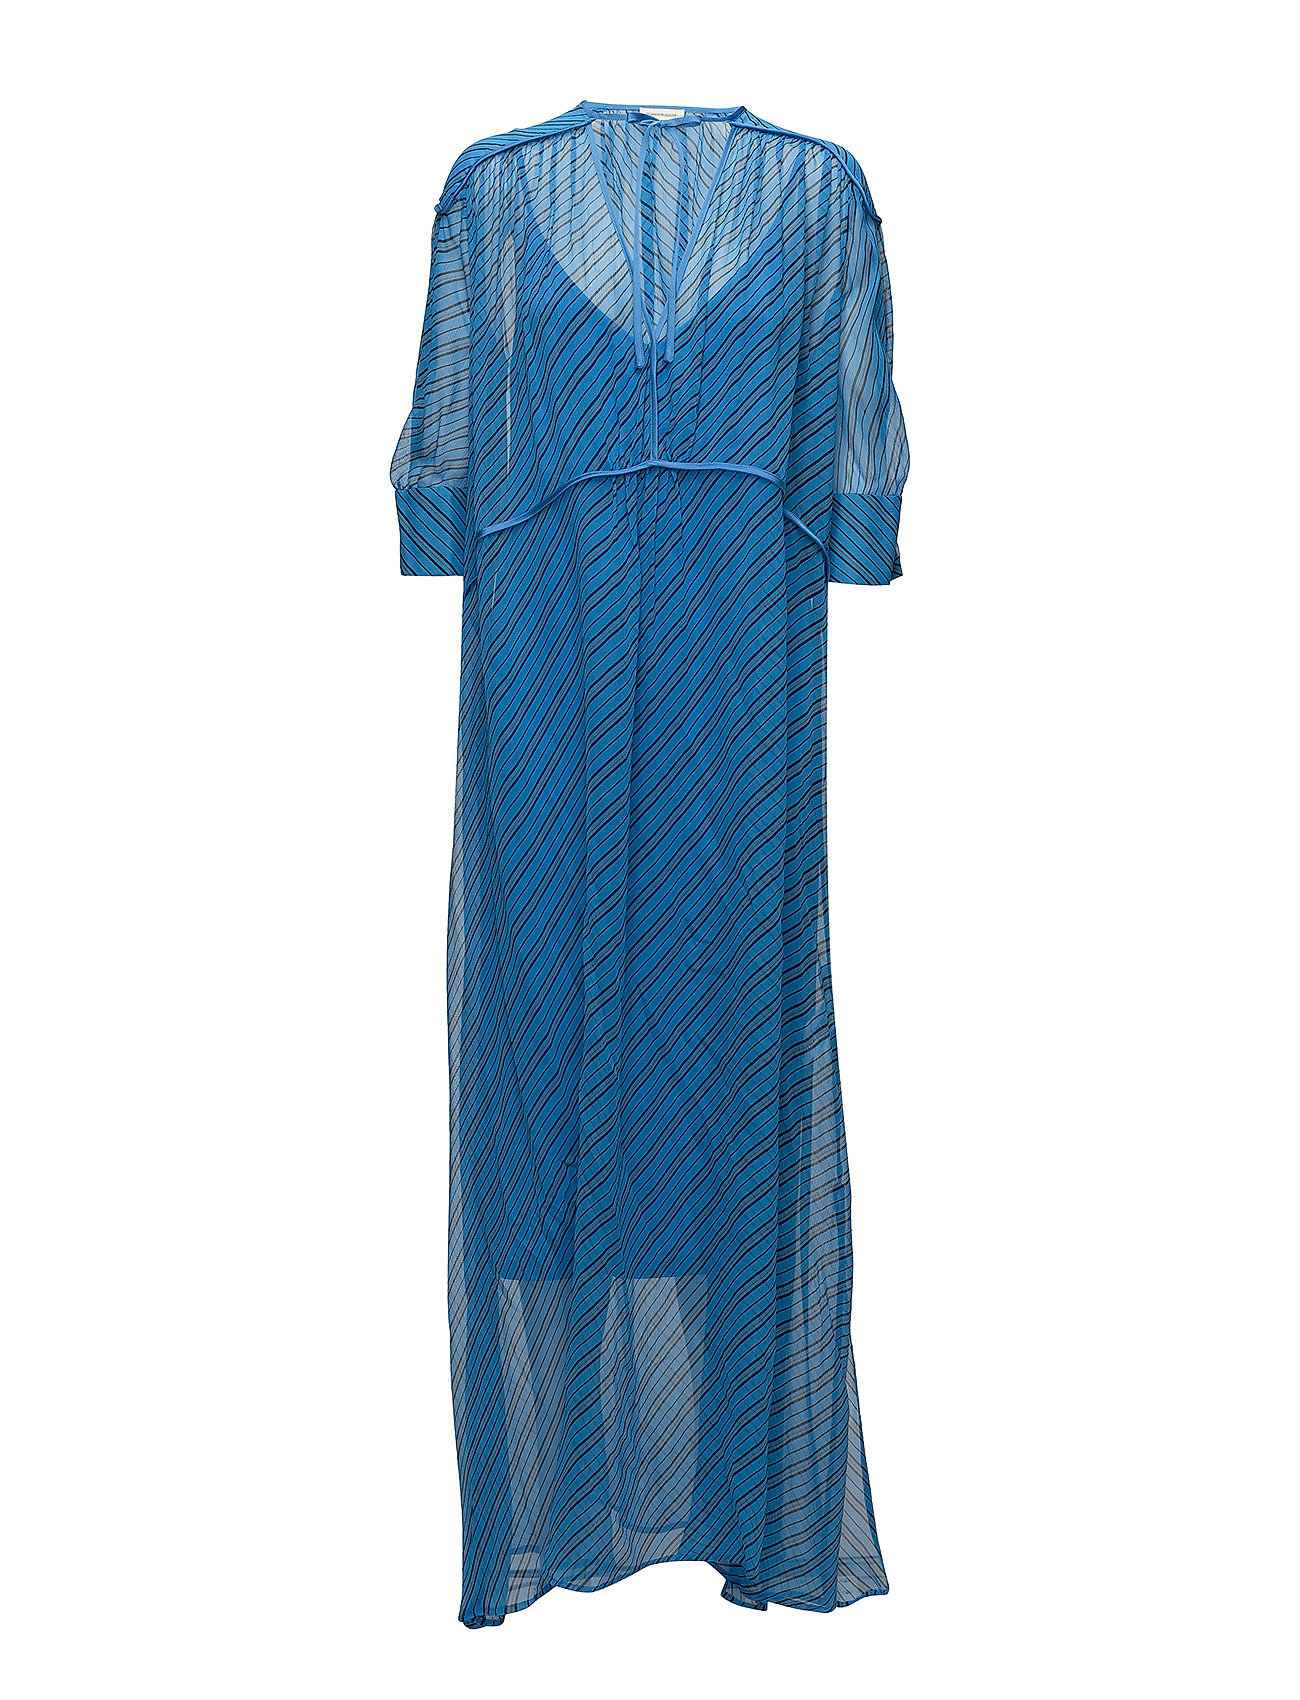 By Malene Birger MIDOMINOUS - CASUAL BLUE